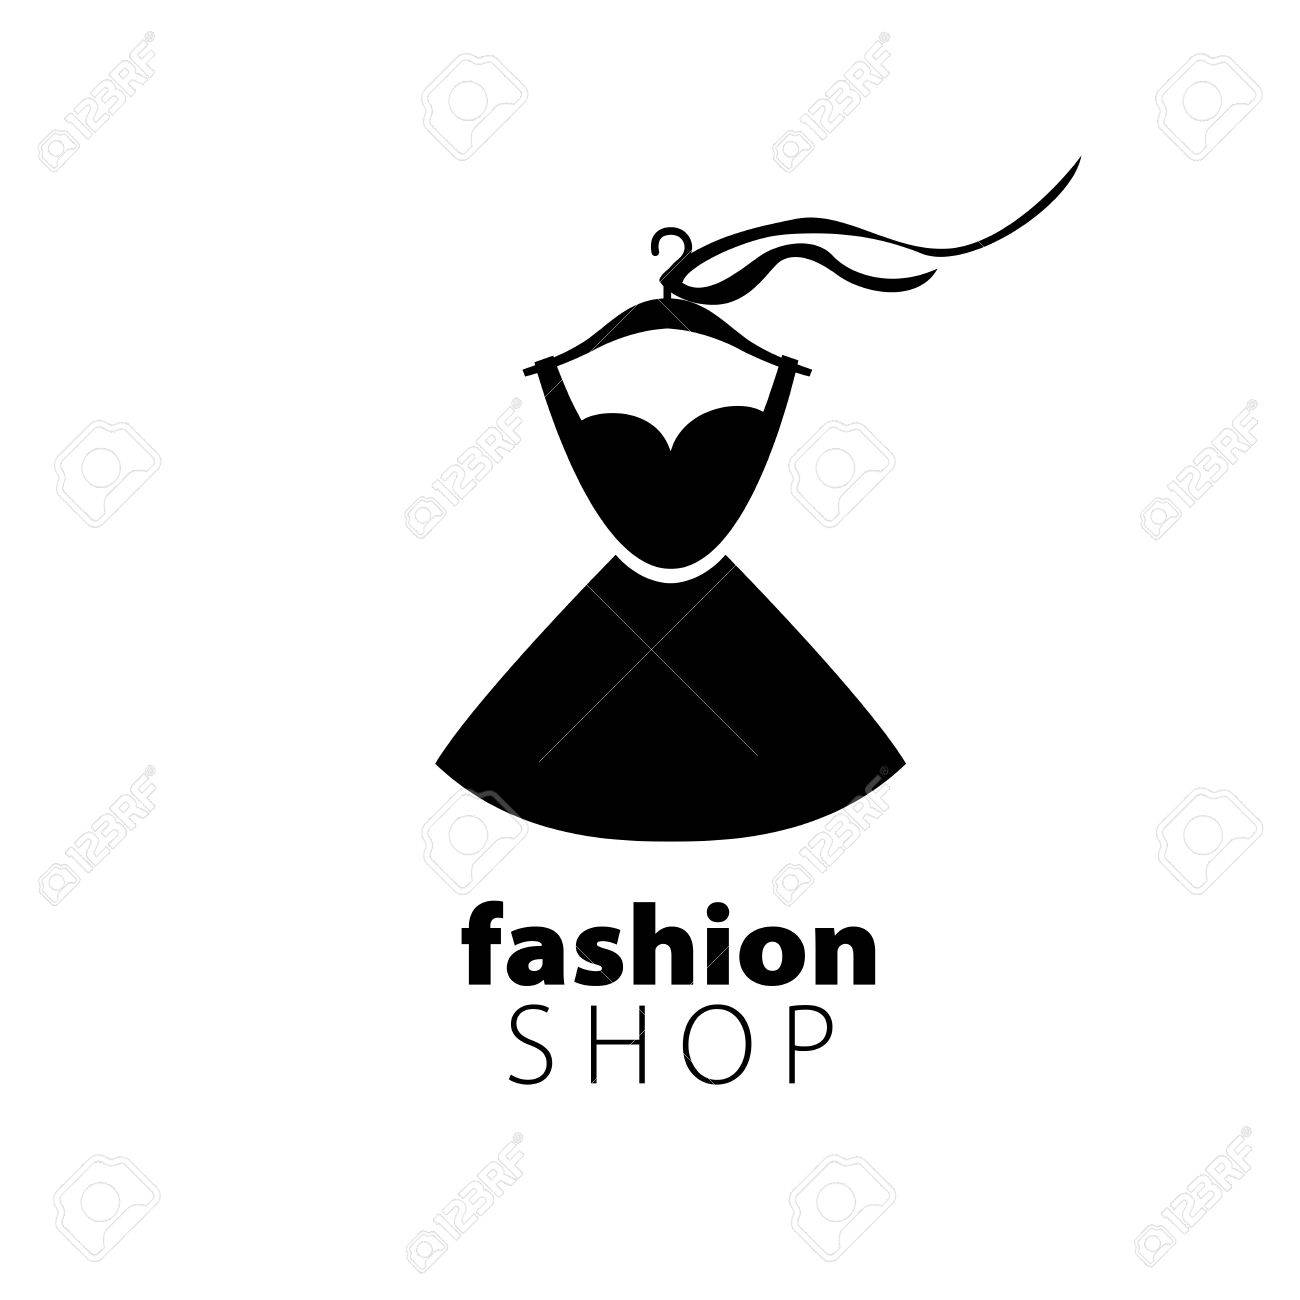 vector logo clothing illustration dress on a hanger royalty free